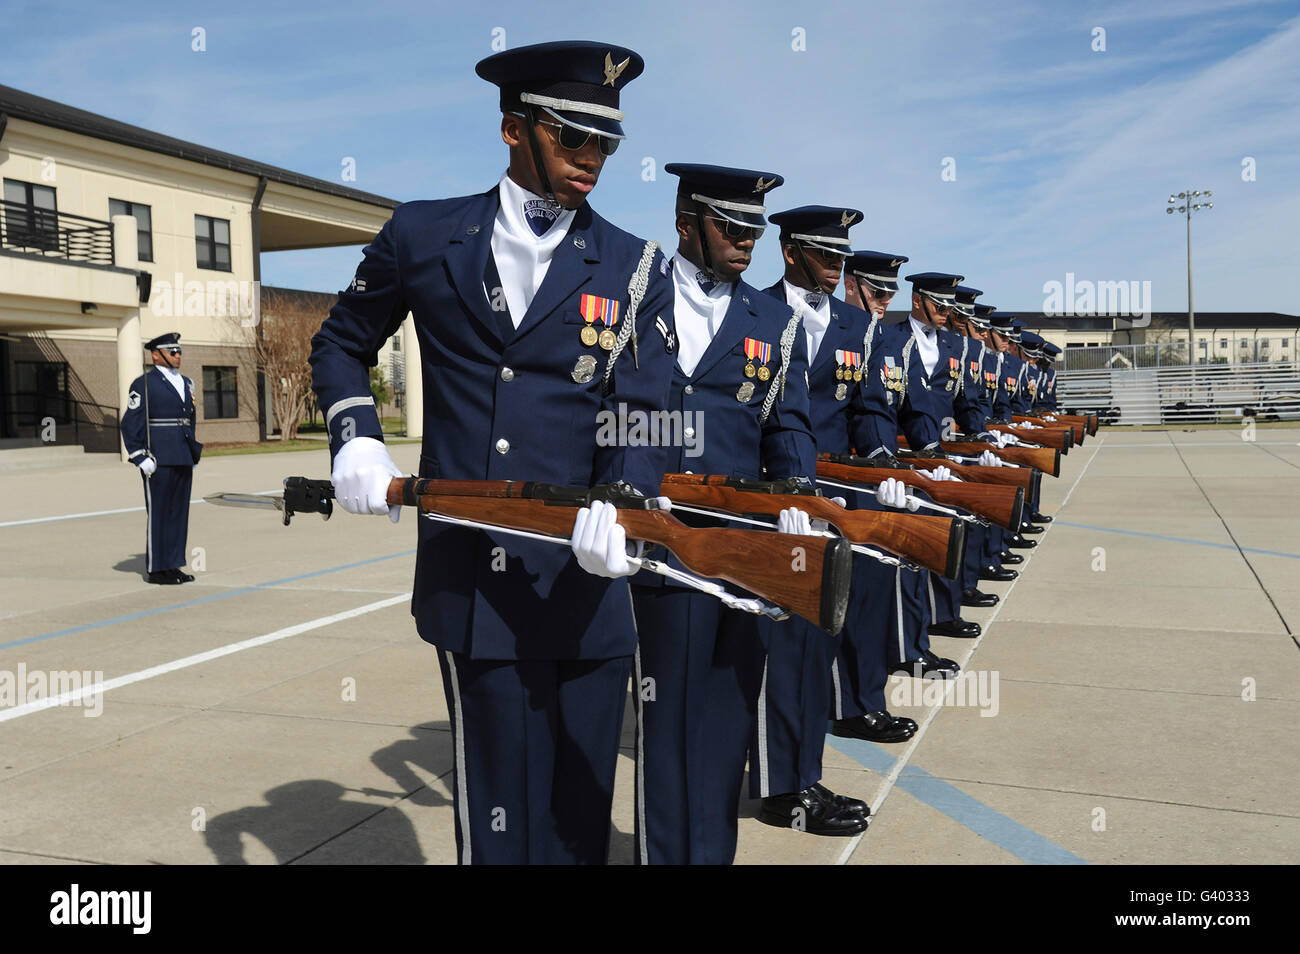 The United States Air Force Honor Guard Drill Team practices a new routine. - Stock Image